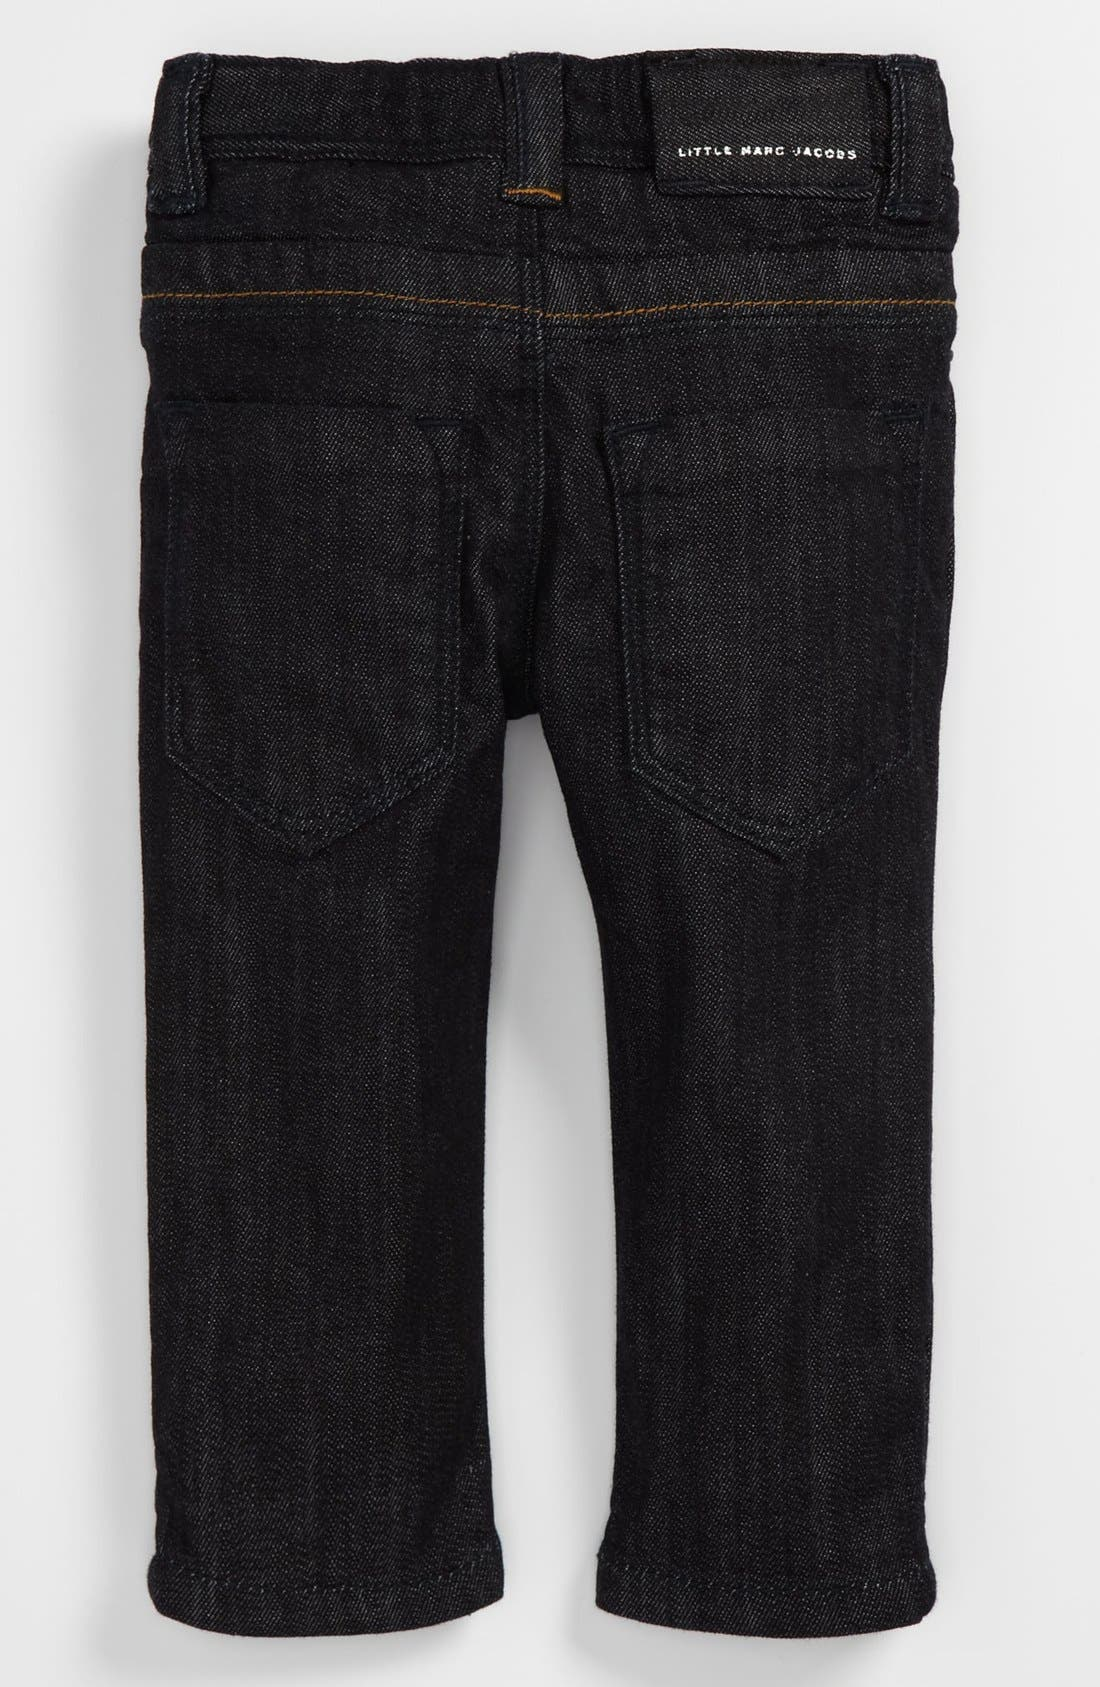 Main Image - LITTLE MARC JACOBS Slim Fit Jeans (Toddler)